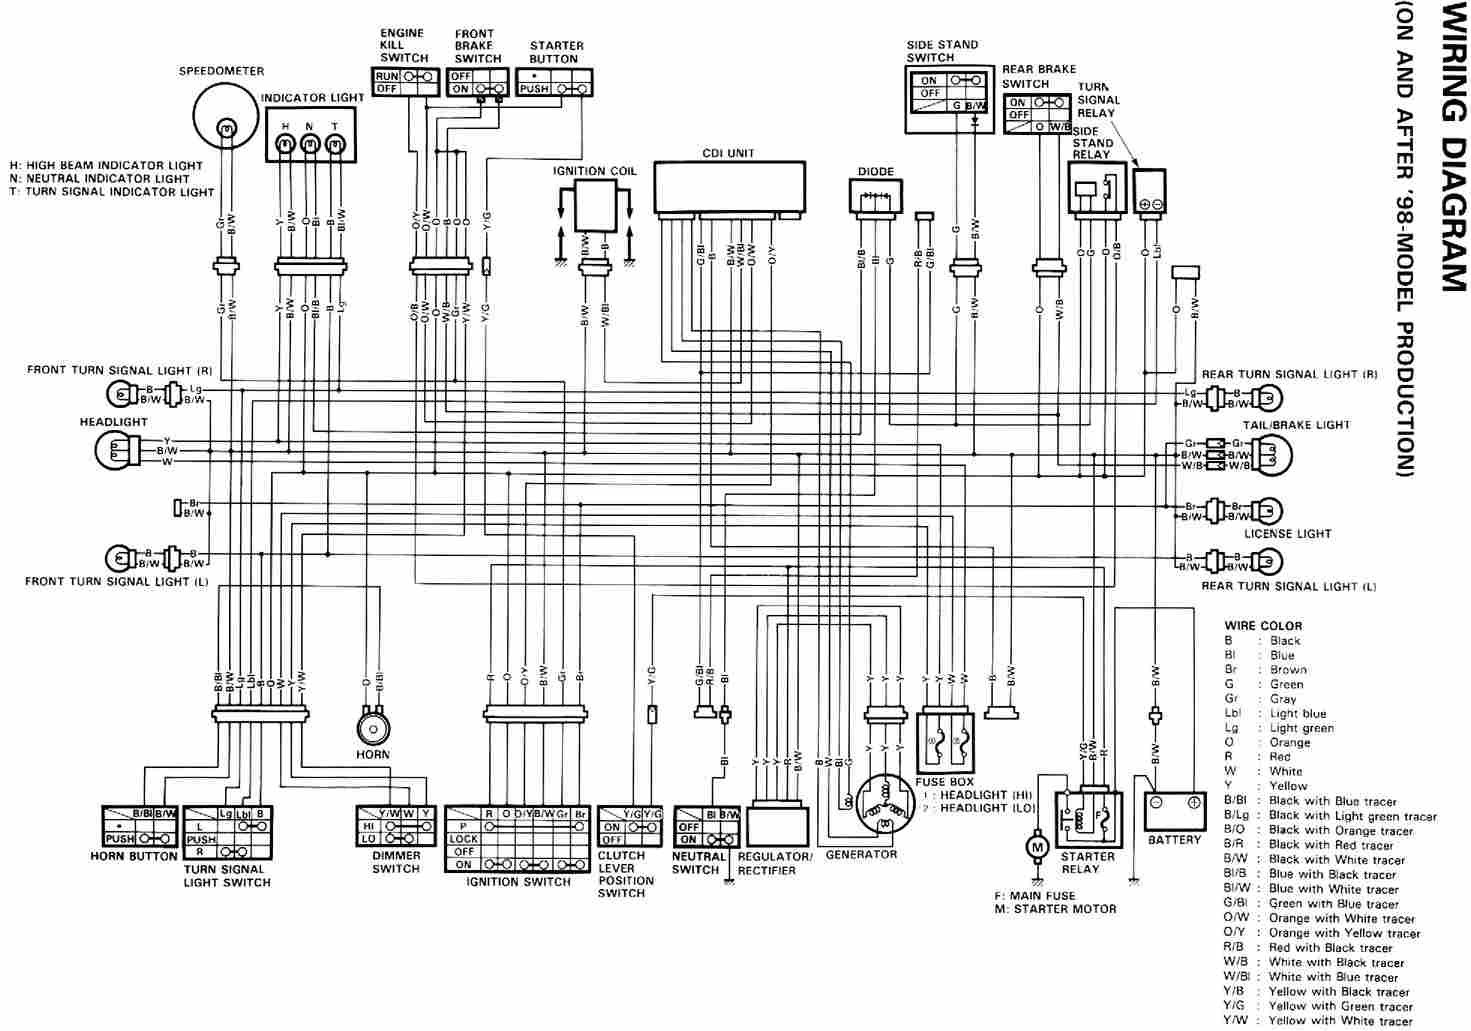 2008 Yfz 450 Wiring Diagram Schematics Diagrams Schematic Suzuki Dr650 1998 Motorcycle All About 2007 2005